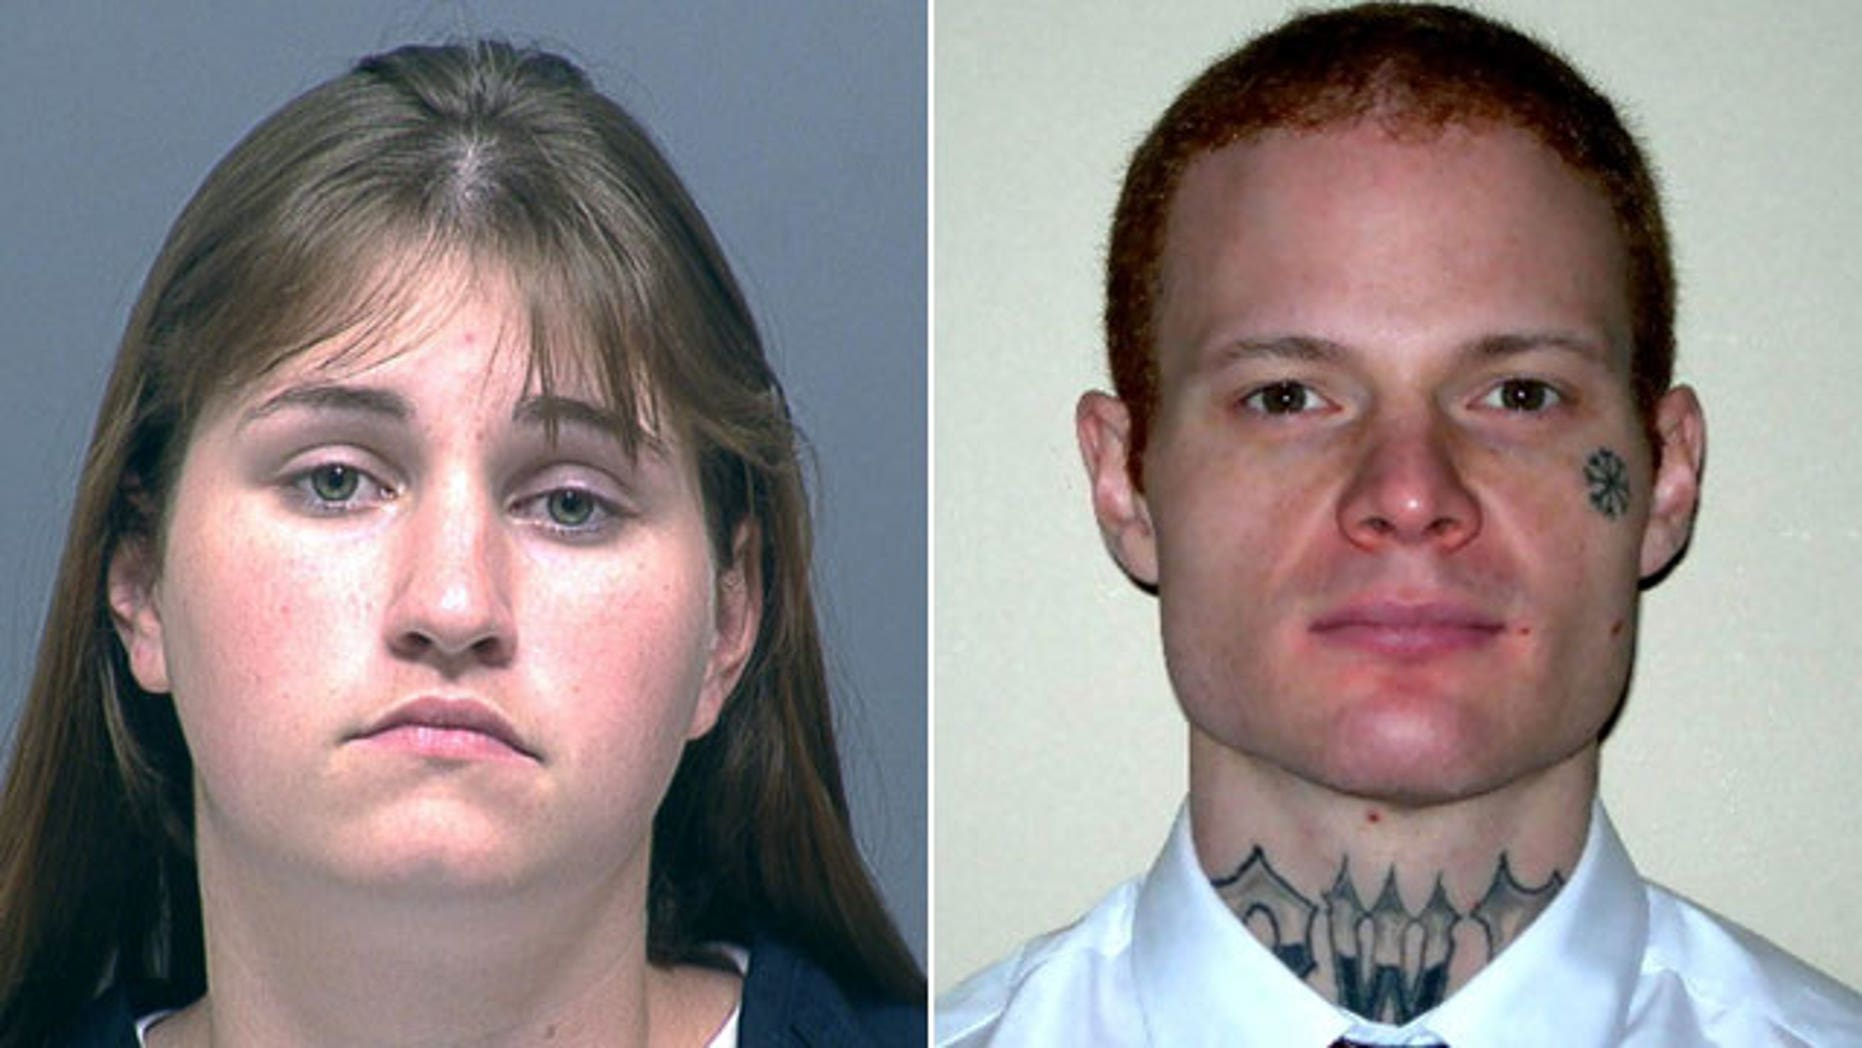 Photo of Holly Grigsby and David Joseph.